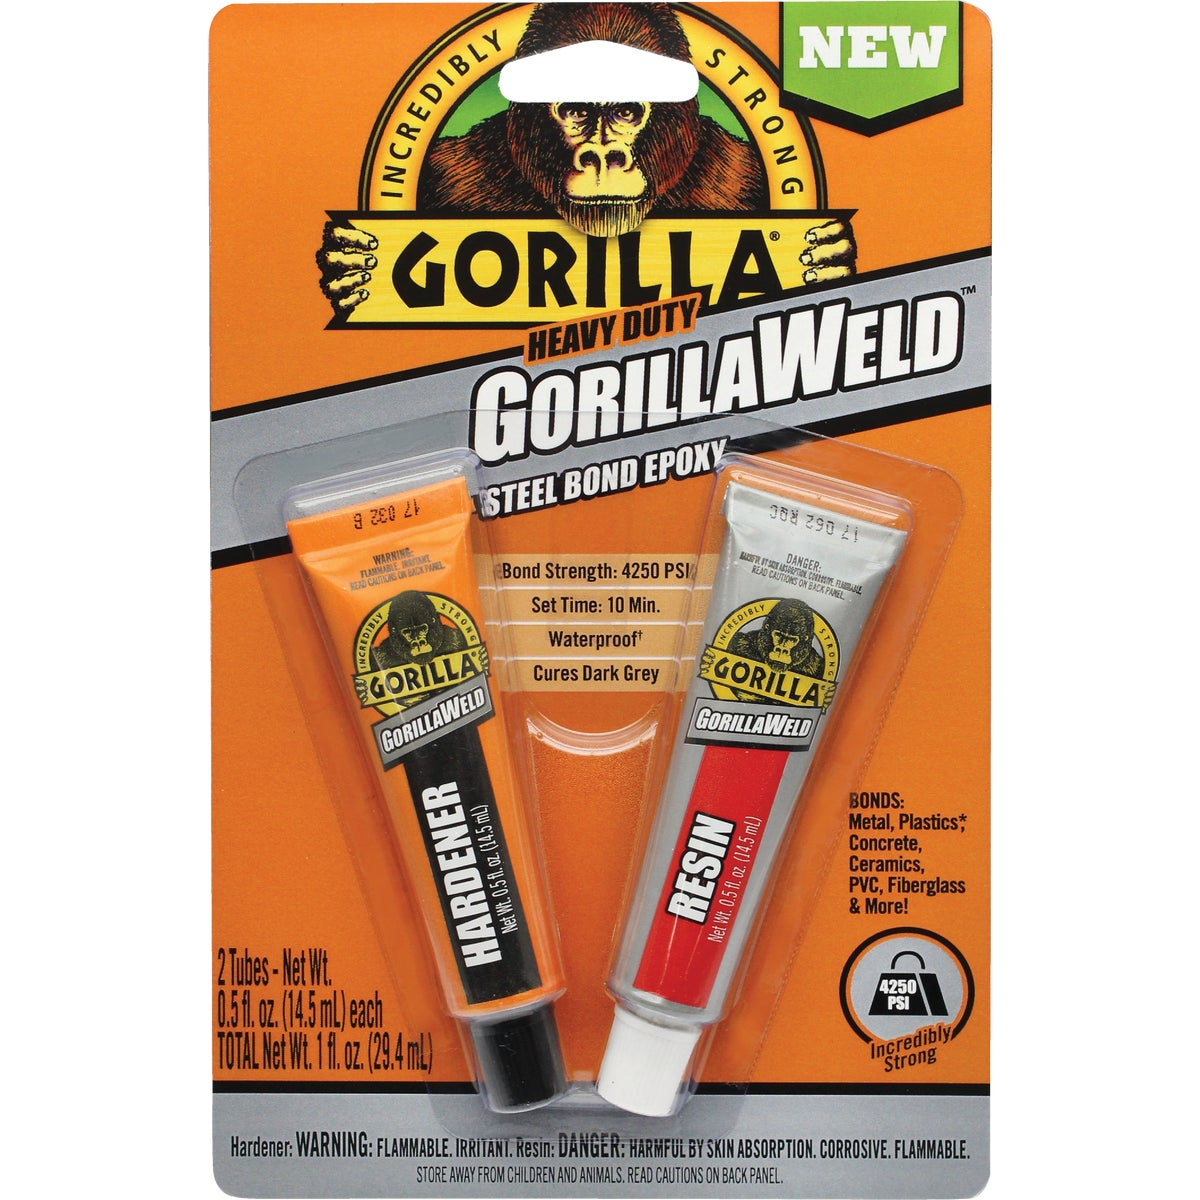 Item 301185, Heavy-duty GorillaWeld steel bond epoxy is an incredibly strong, two-part adhesive.